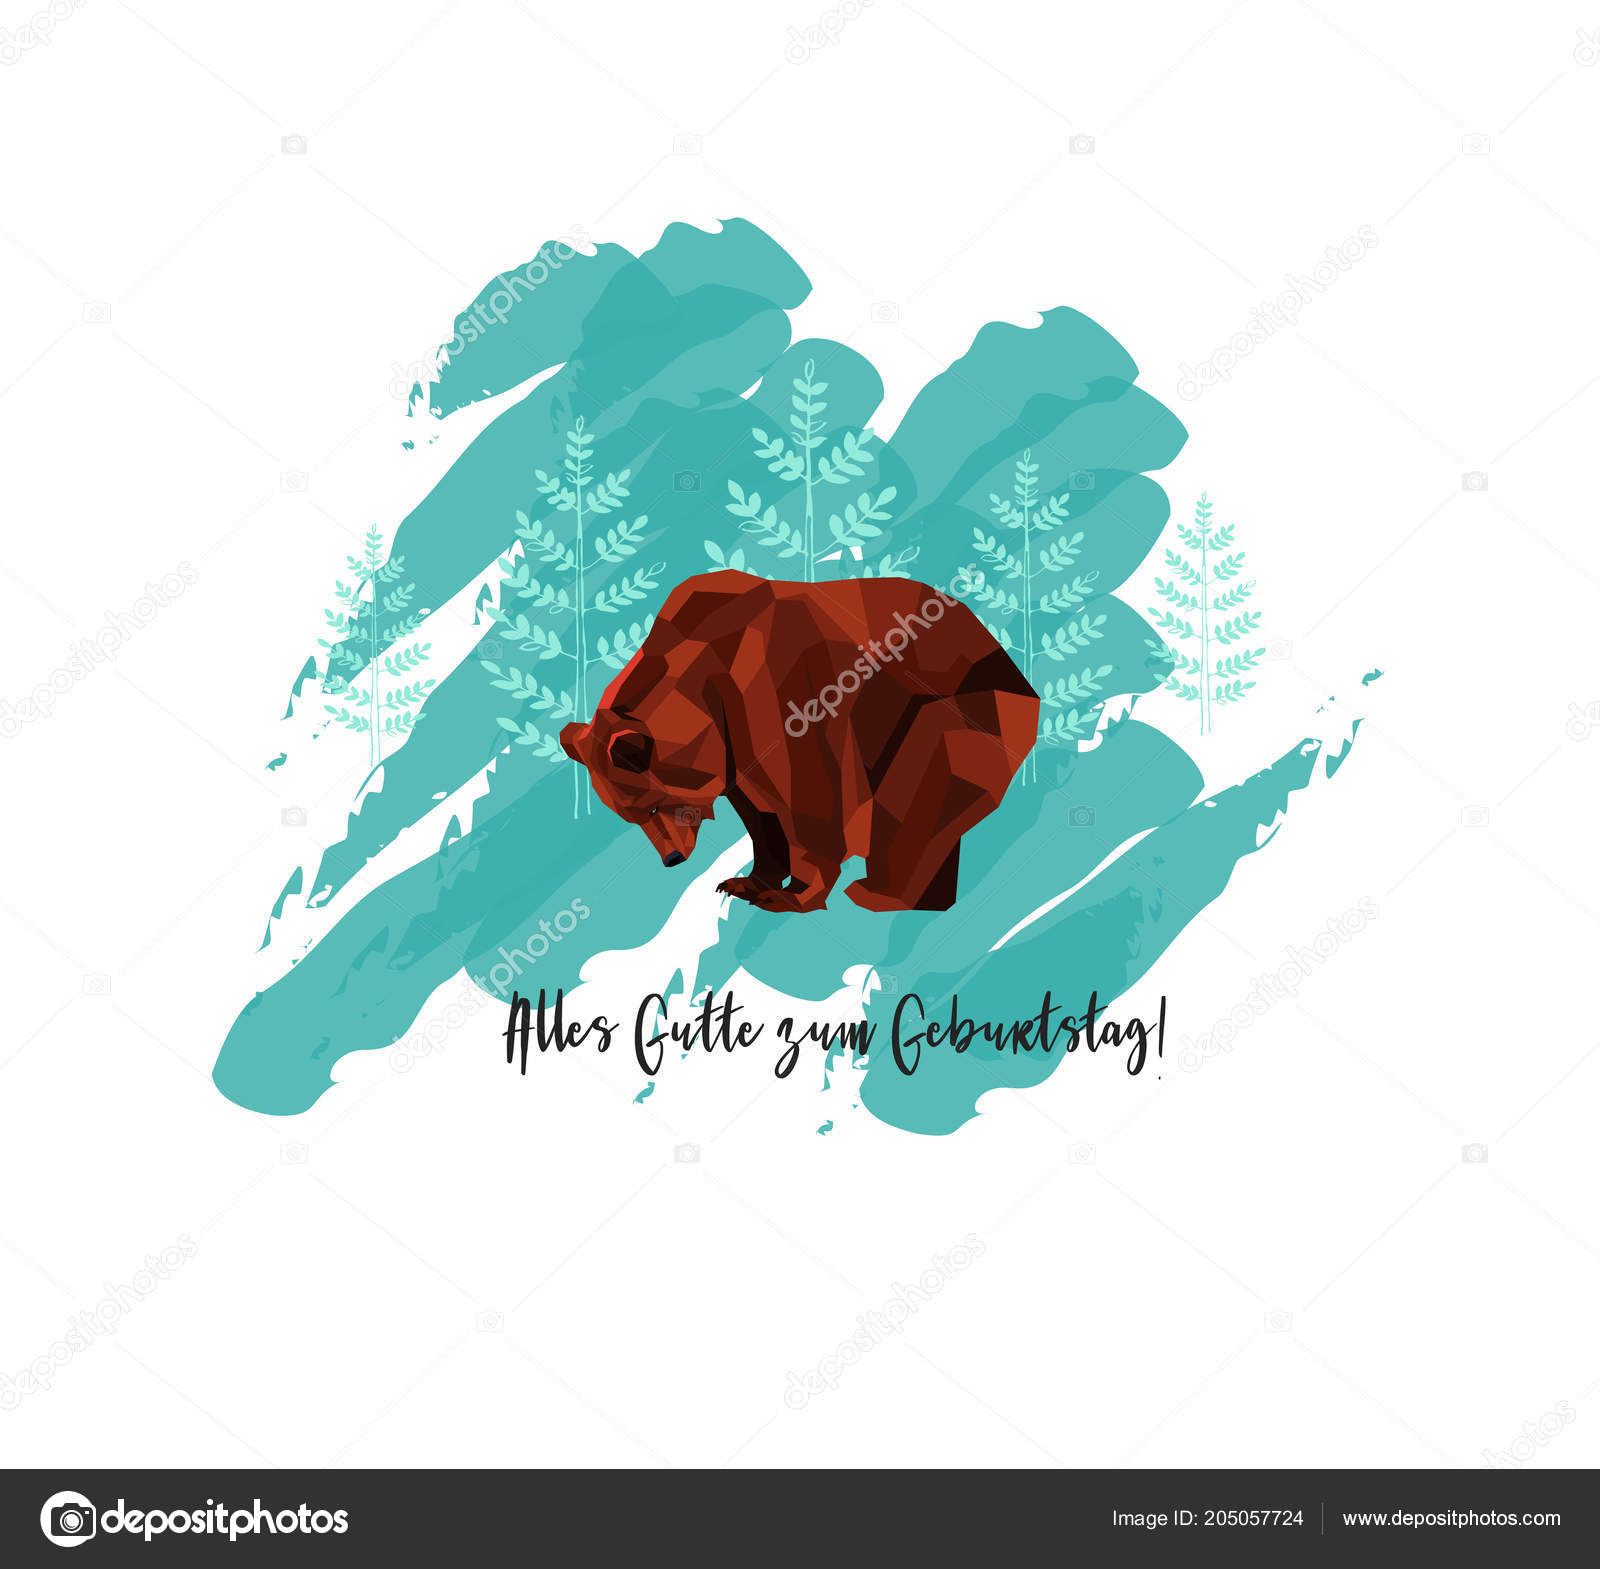 Greeting Card Low Poly Brown Bear Trees Background Text German